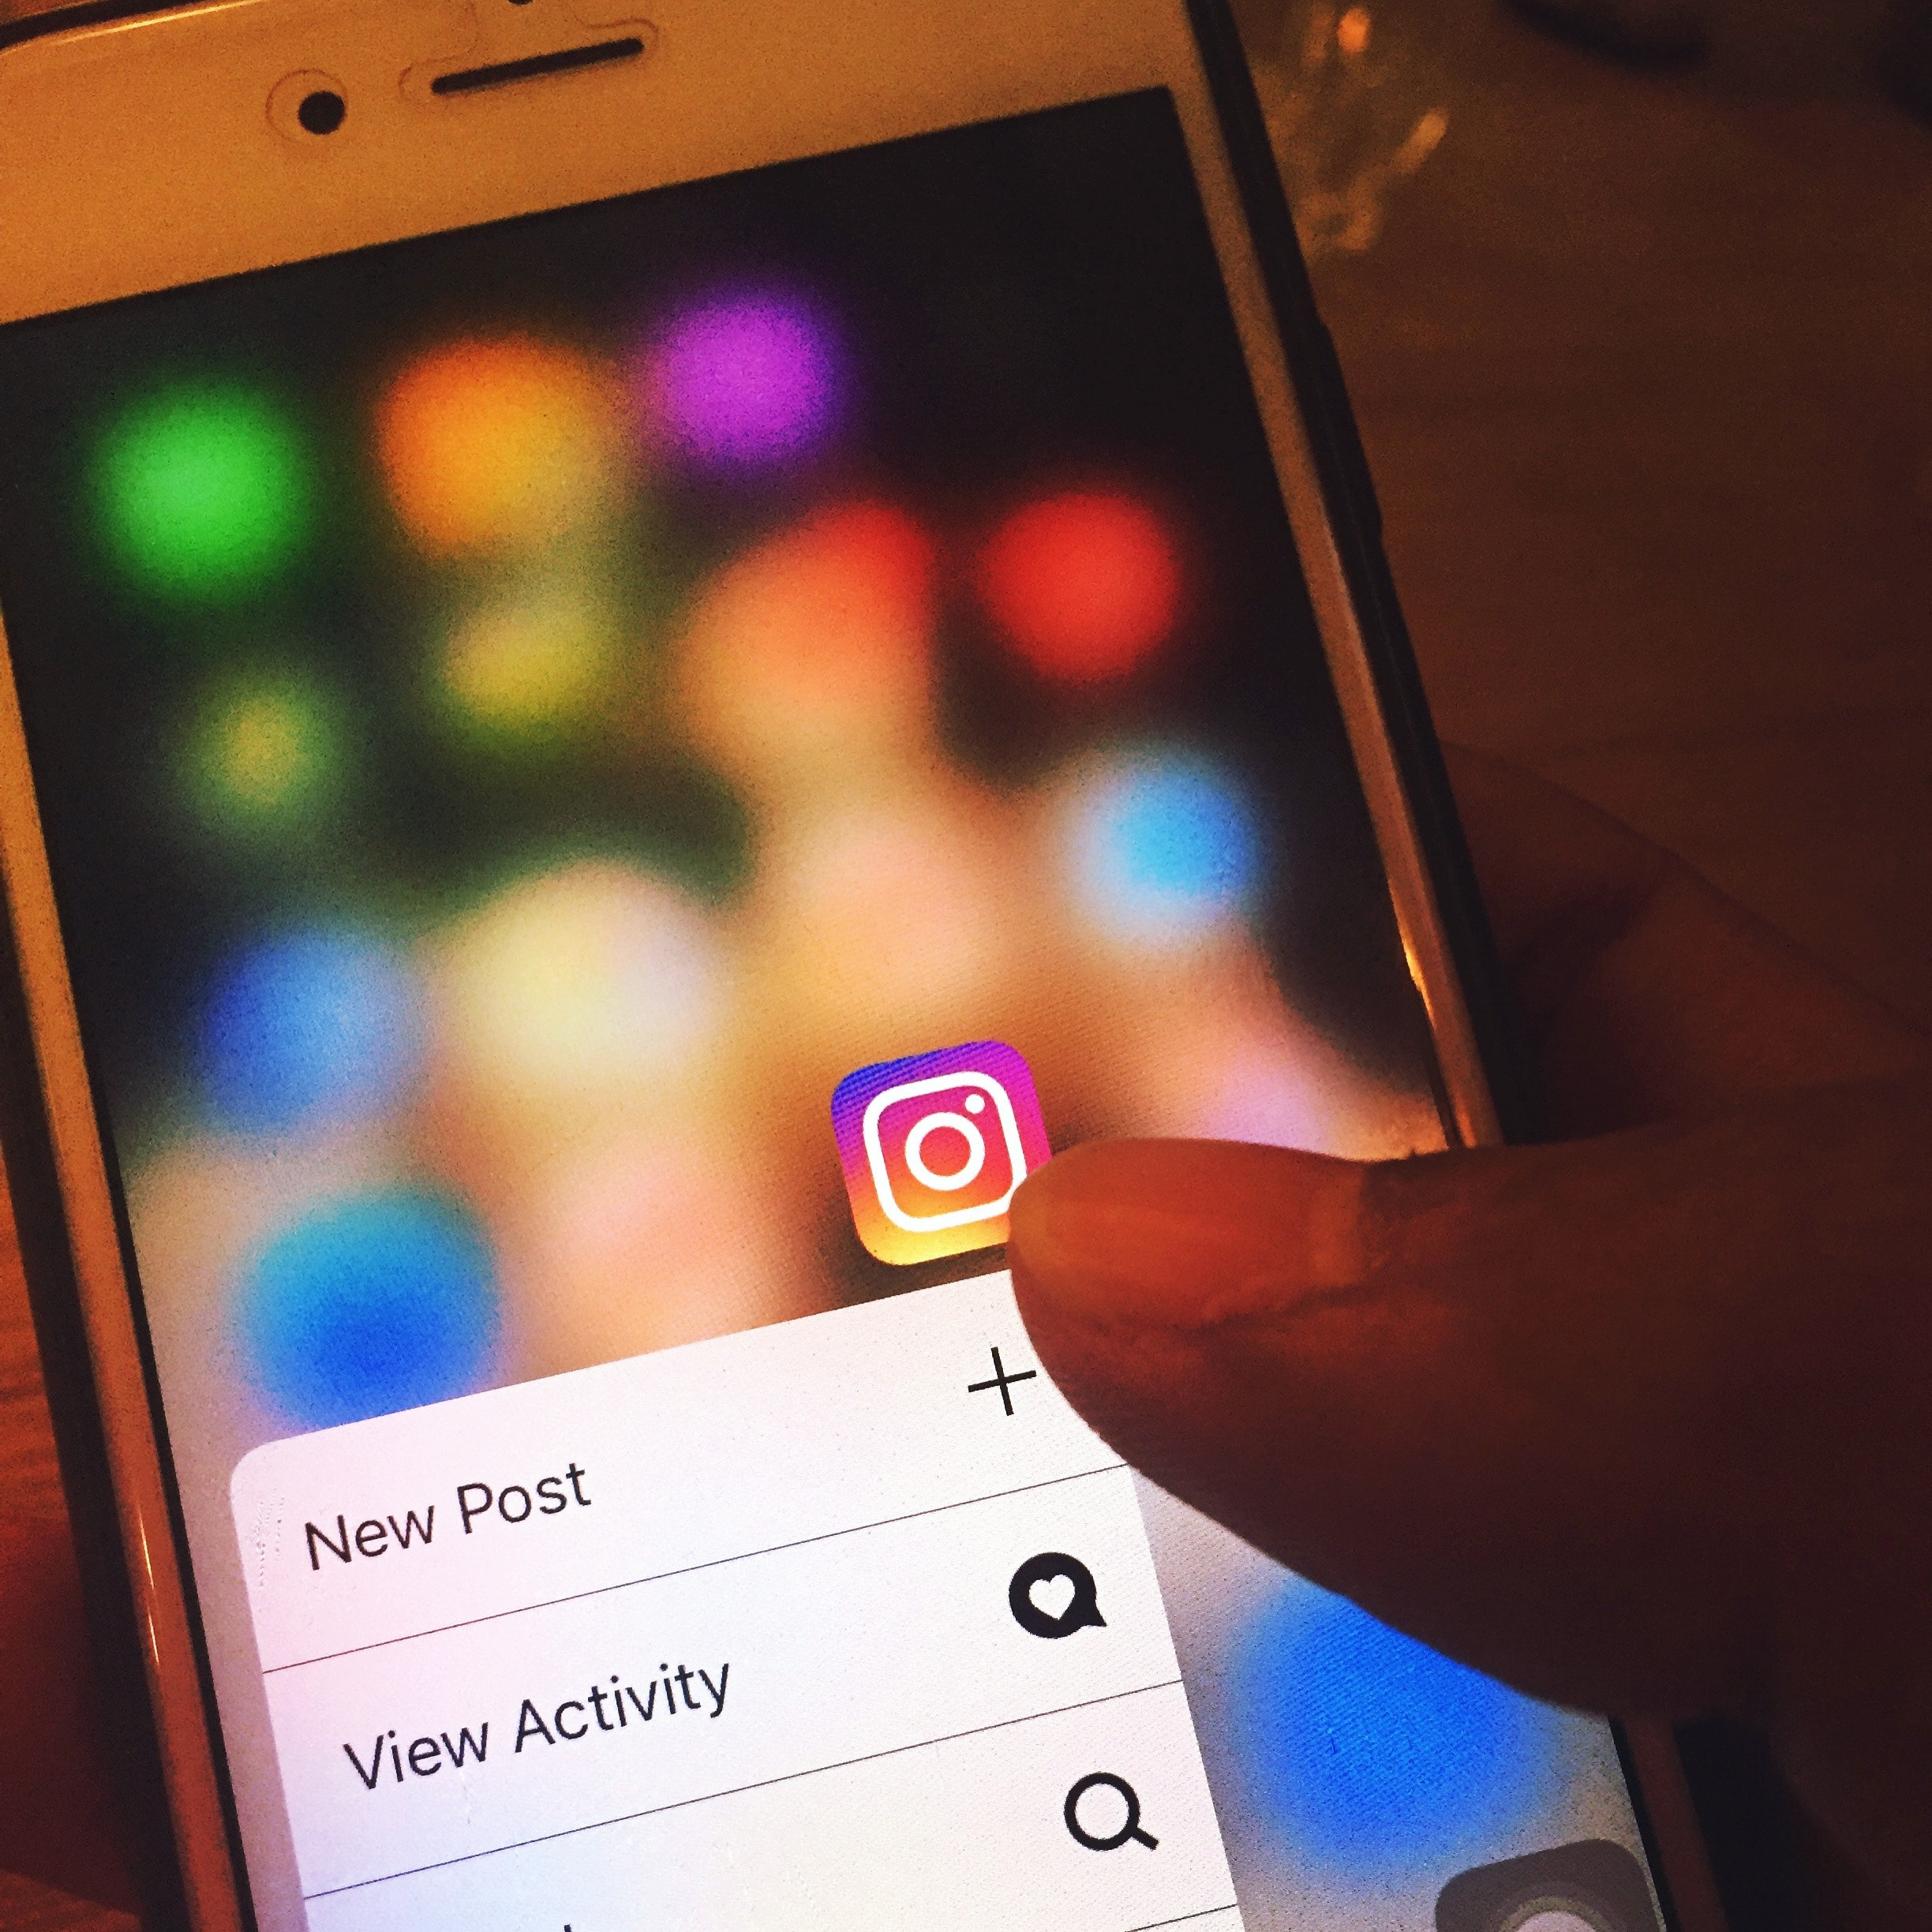 Social media's influence on our mental health